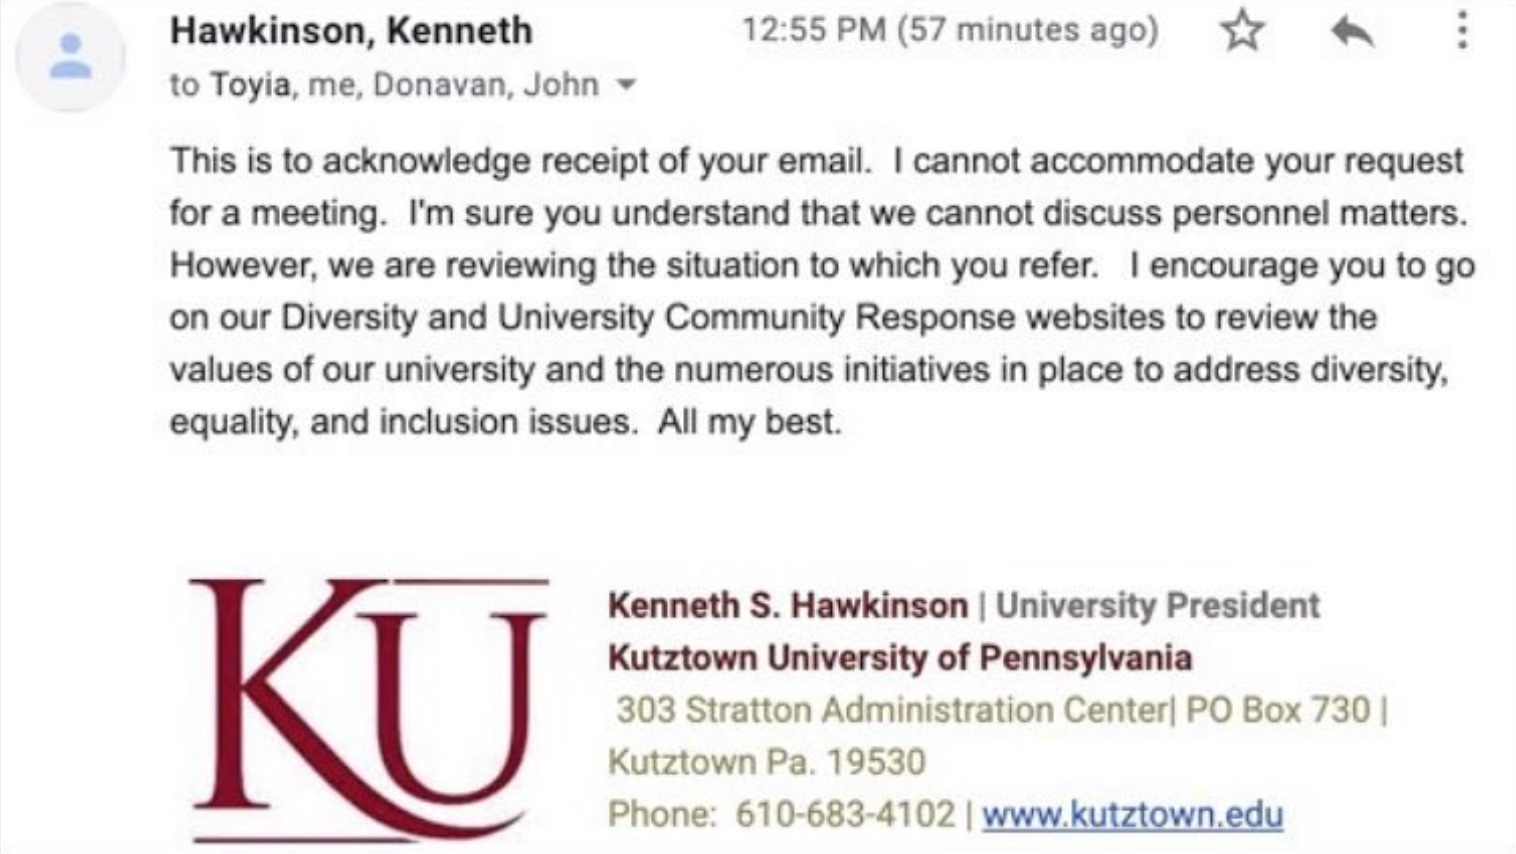 Reply from Pres. Hawkinson to KUA. This is to acknowledge receipt of your email. I cannot accommodate your request for a meeting. I'm sure you understand that we cannot discuss personnel matters. However, we are reviewing the situation to which you refer. I encourage you to go on our Diversity and University Community Response websites to review the values of our university and the numerous initiatives in place to address diversity, equality, and inclusion issues. All my best.